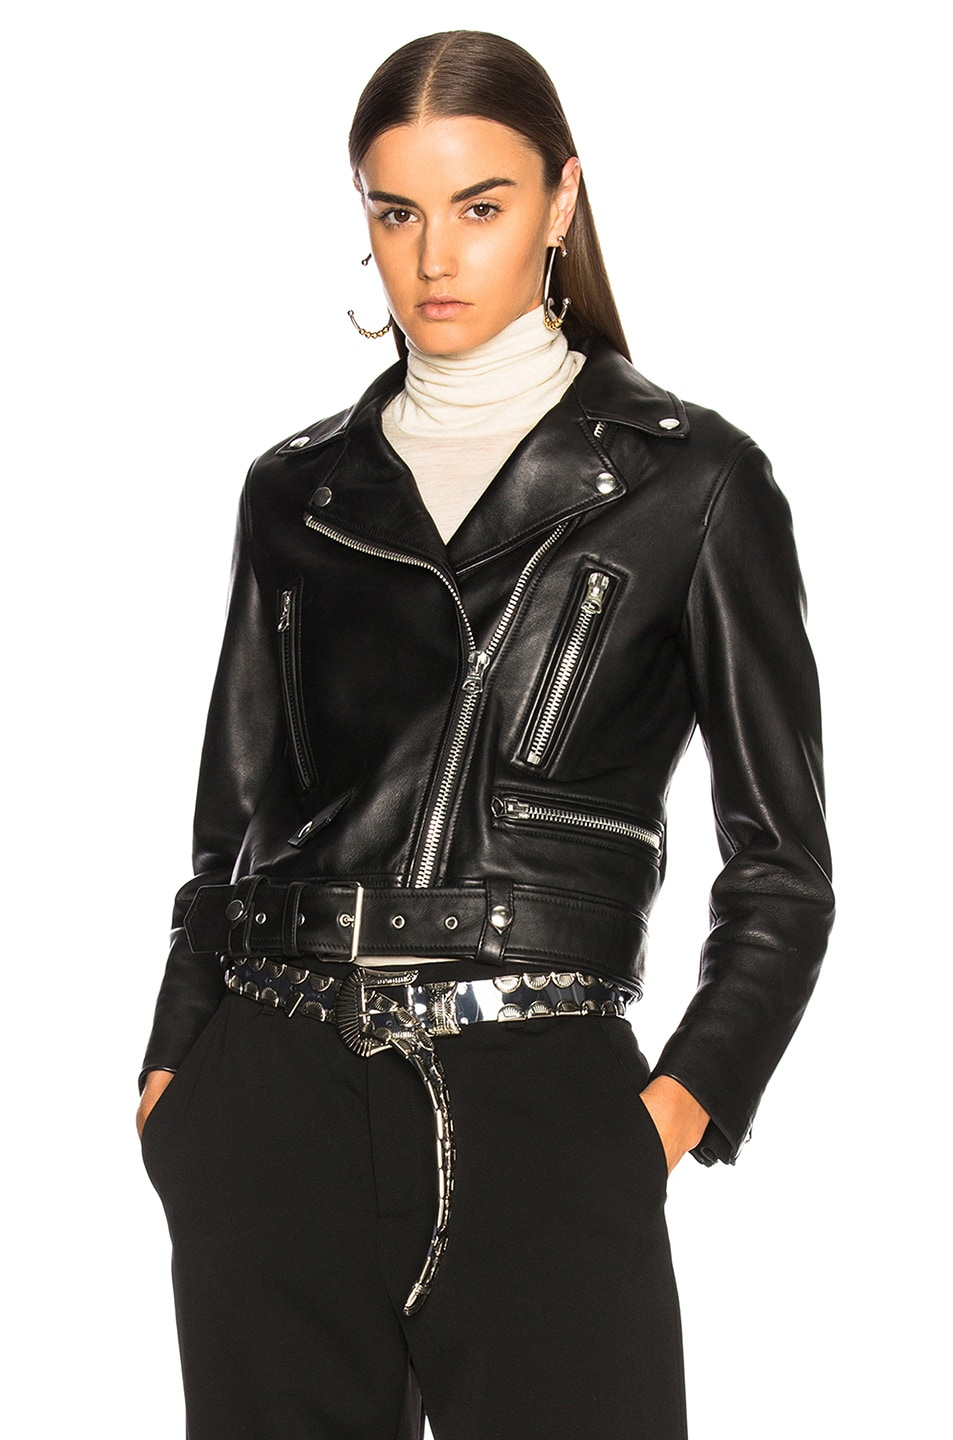 Merlyn Relaxed Leather Biker Jacket, Black